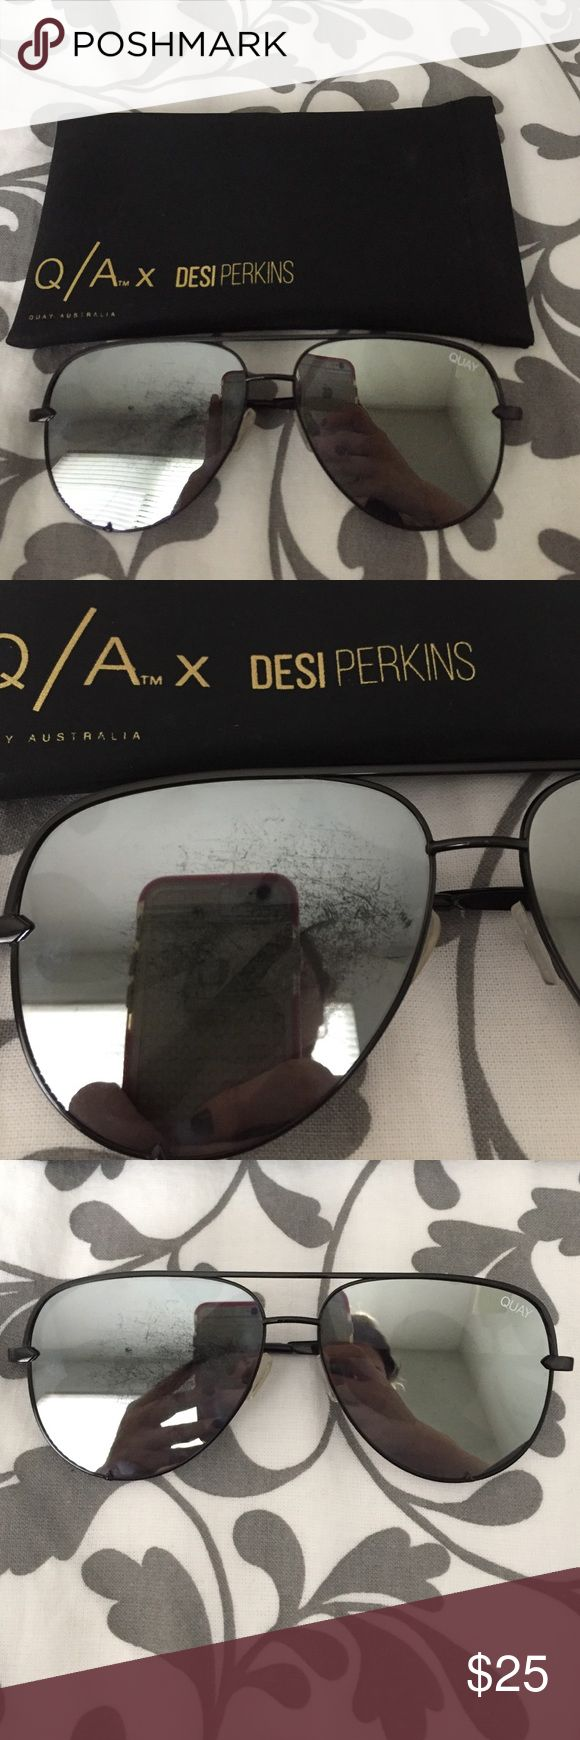 Desi Perkins High Key Black Aviators Desi Perkins High Key Black Aviators. Bought off of here, has a big scratch on the right lense. The left lense is in good condition. Let me know if you have any questions. Offers are welcome! Quay Australia Accessories Sunglasses